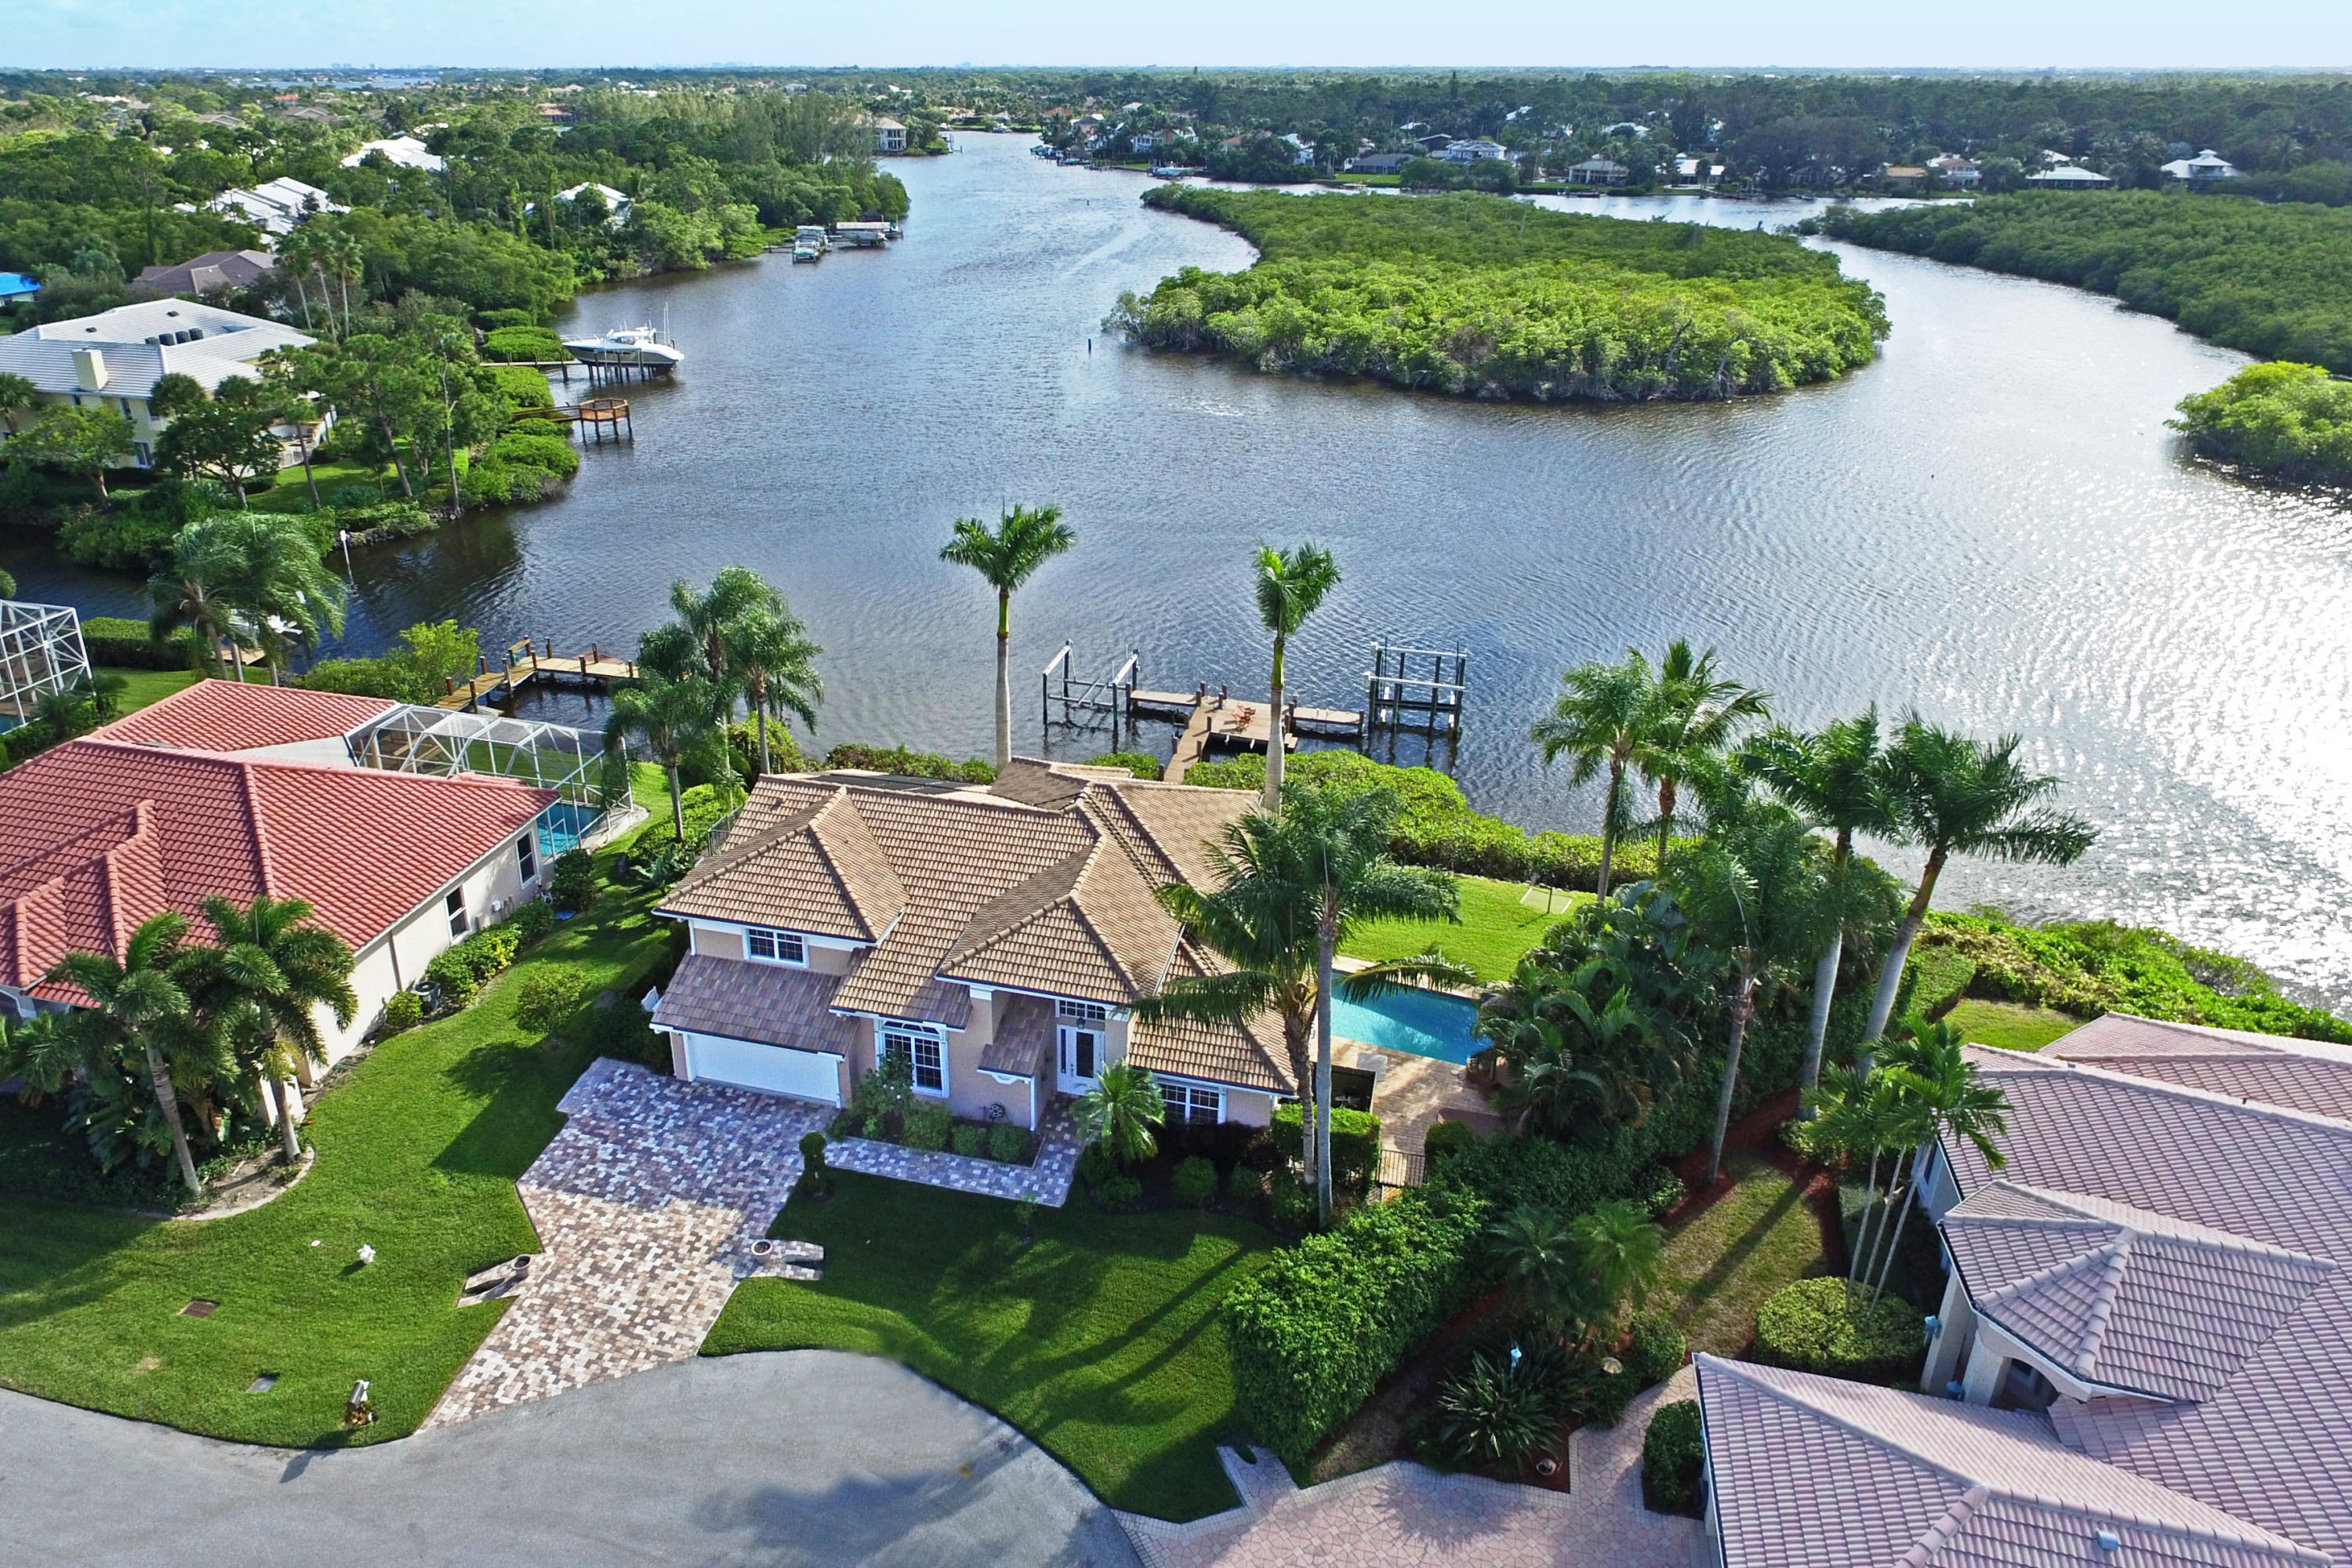 New Home for sale at 8594 Water Oak Place in Tequesta